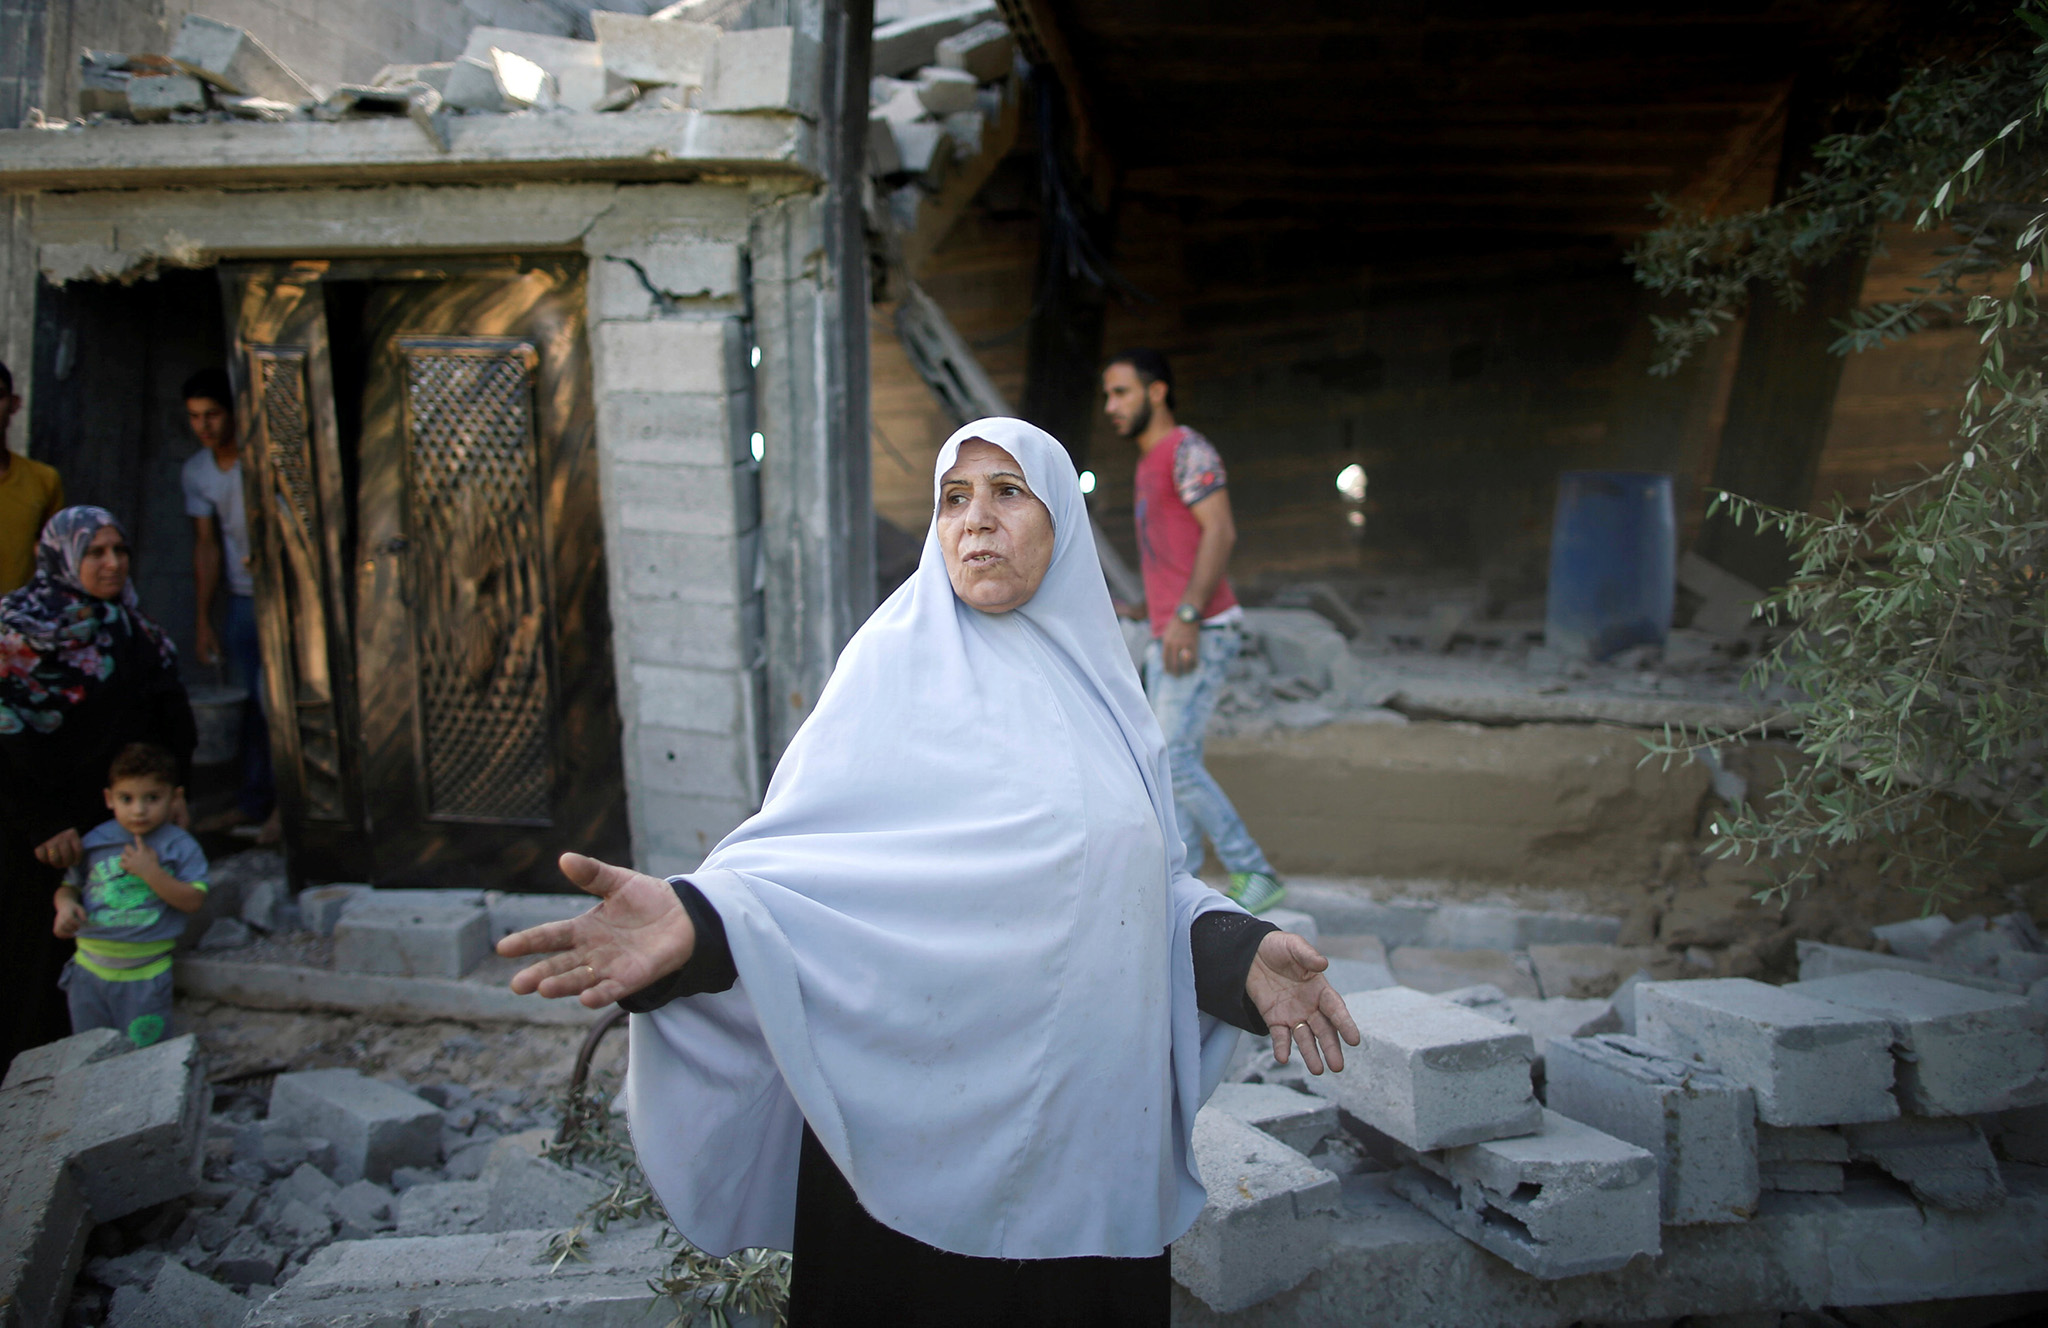 A Palestinian woman gestures as she inspects the scene of what witnesses said was an Israeli air strike carried out on Wednesday, east of Gaza City October 6, 2016. REUTERS/Mohammed Salem